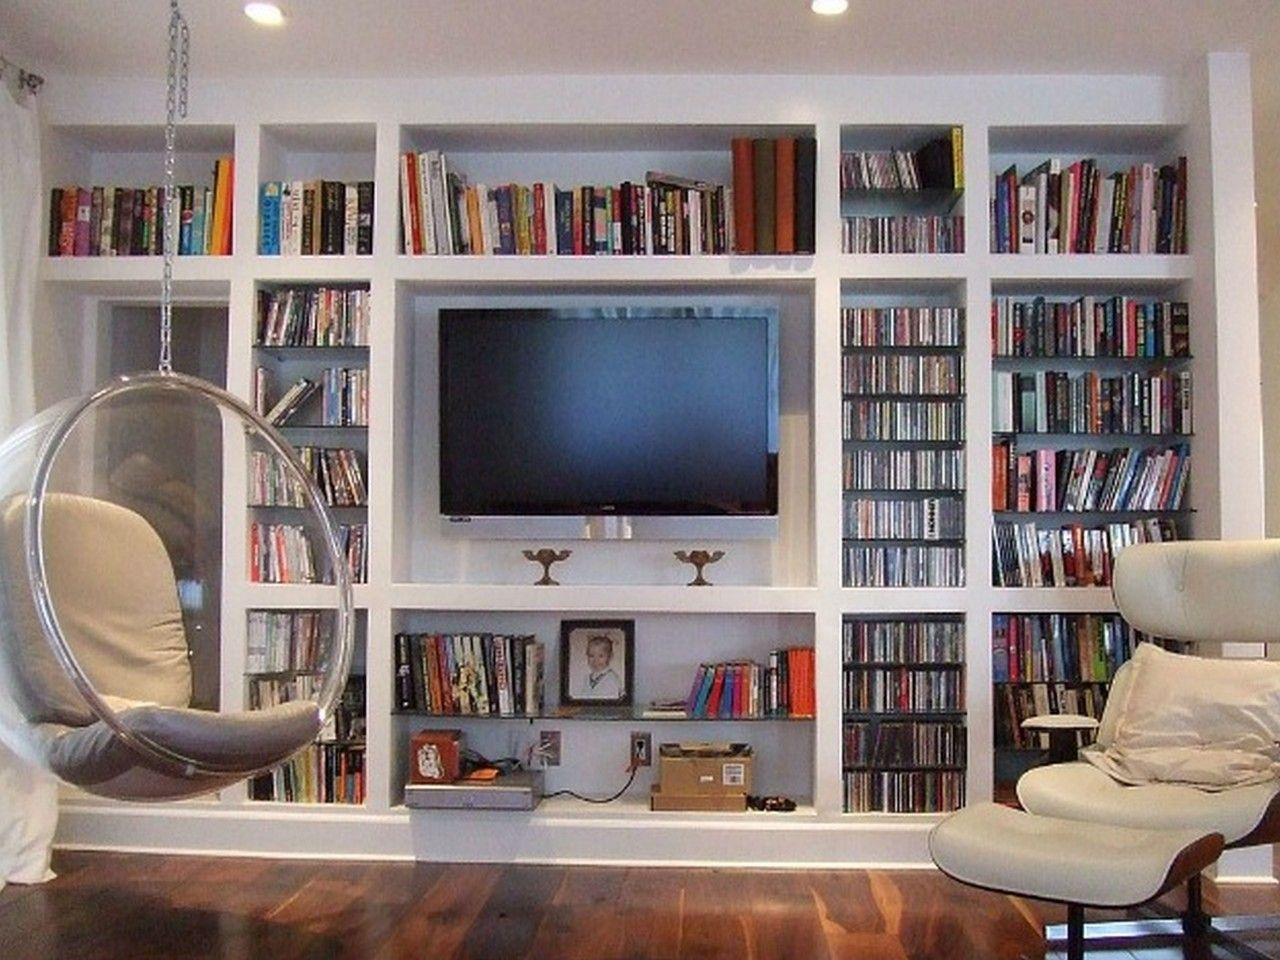 Delicieux Amusing Modern Bookshelves Inspiration Exquisite Bookshelves For Kids  Outstanding Hardware Ornamentation, Built In Bookshelves And Bubble Chair  Amusing ...